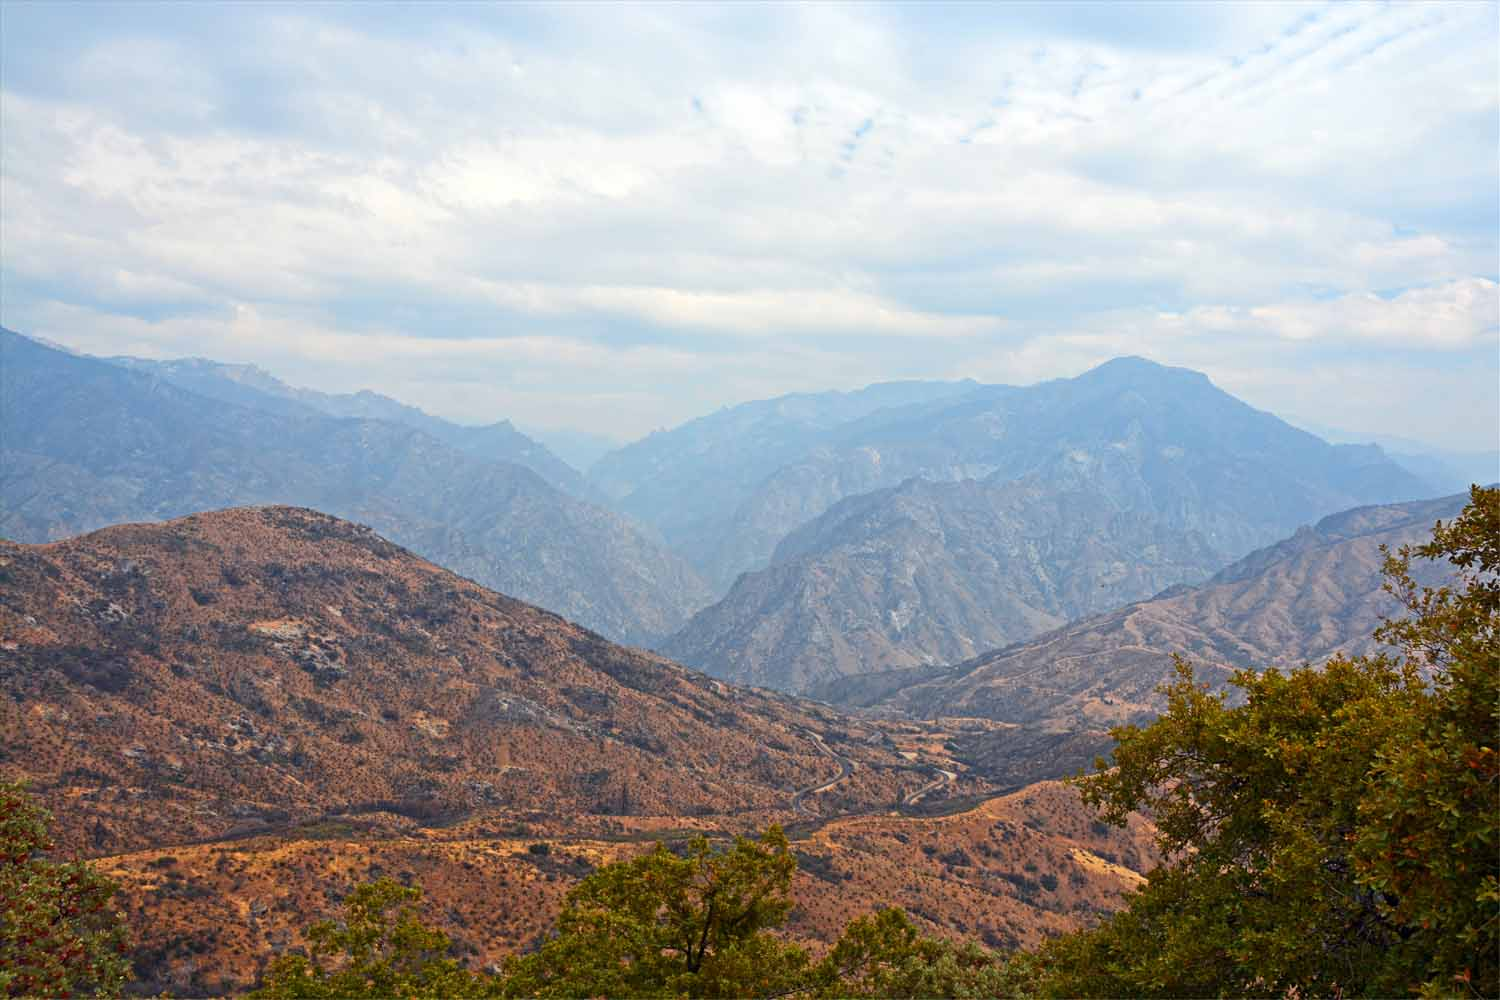 More mountain views of the Sierra Nevada's.